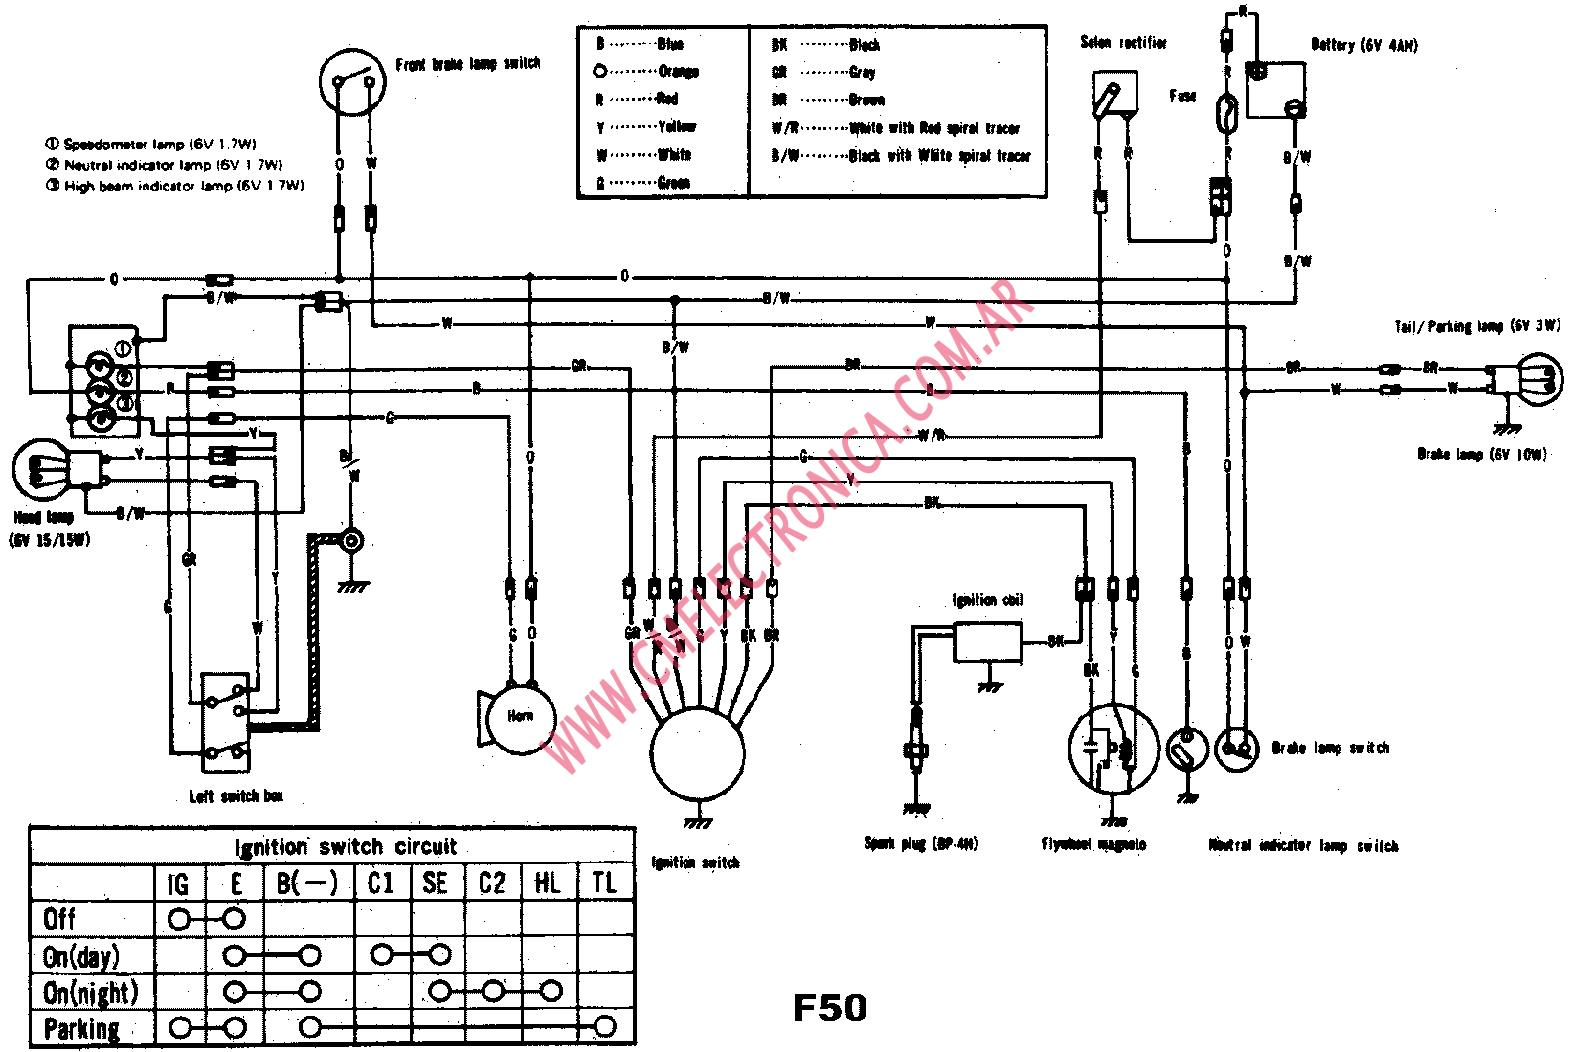 Wiring Diagram For A 1996 Suzuki Intruder 1400. Suzuki